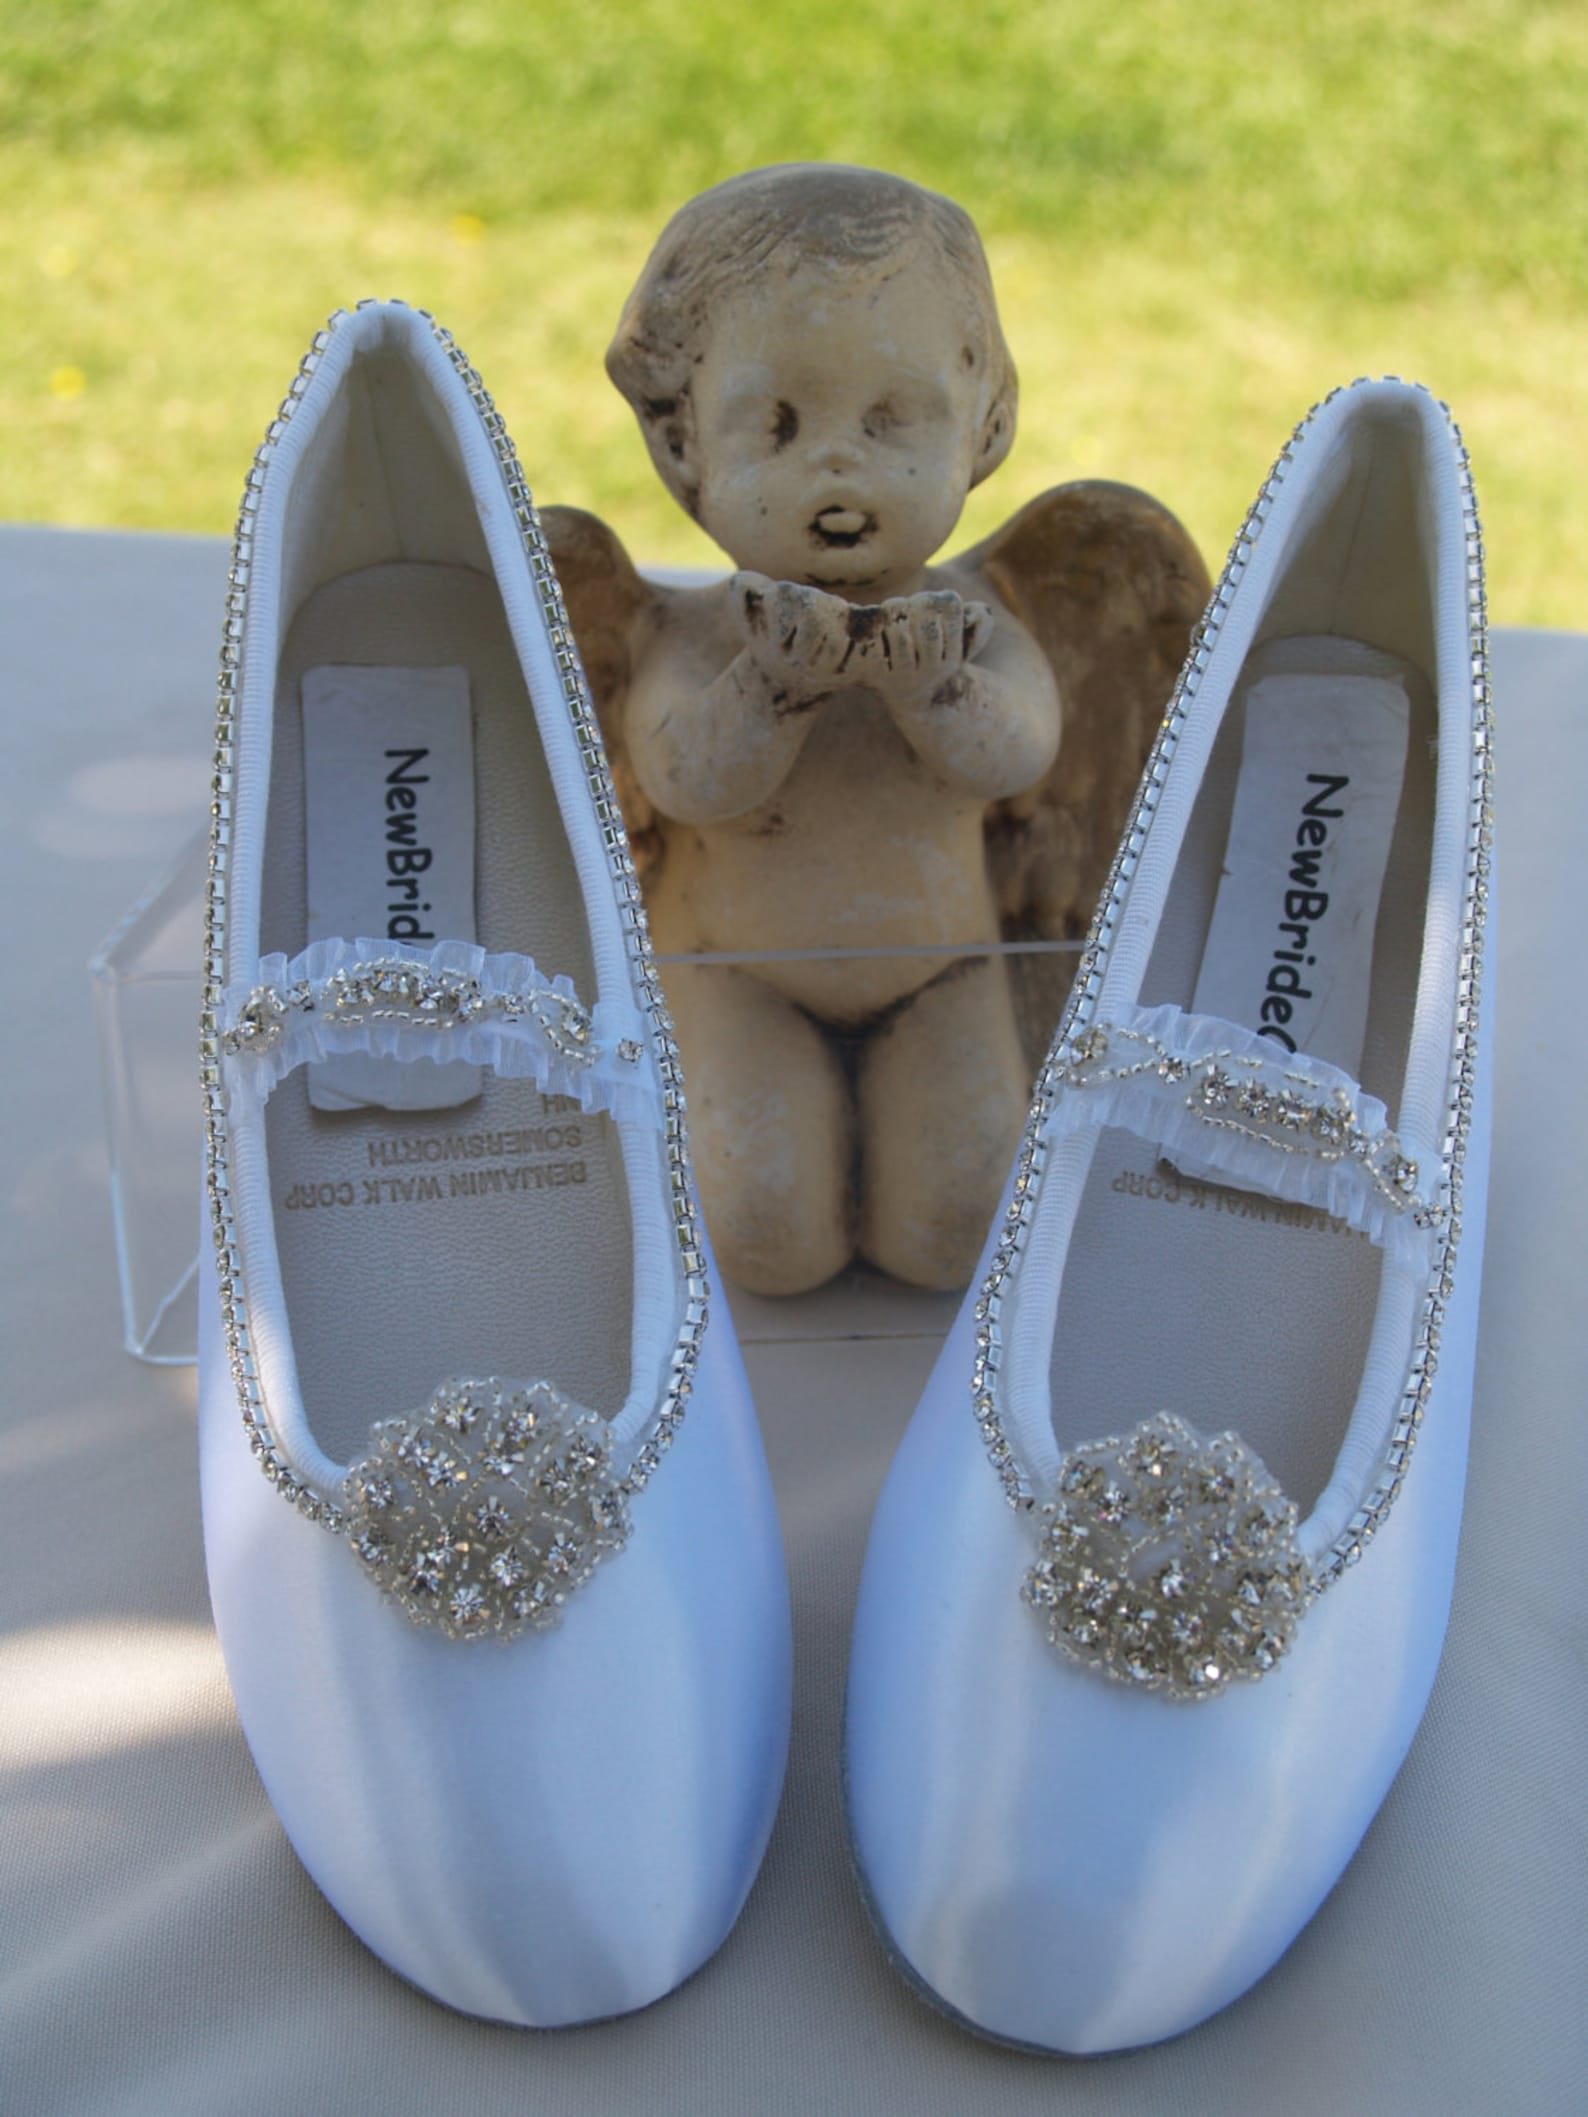 wedding shoes ballet style flats swarovski silver crystals flowers,bling white satin flats, luxurious, mary janes, old hollywood